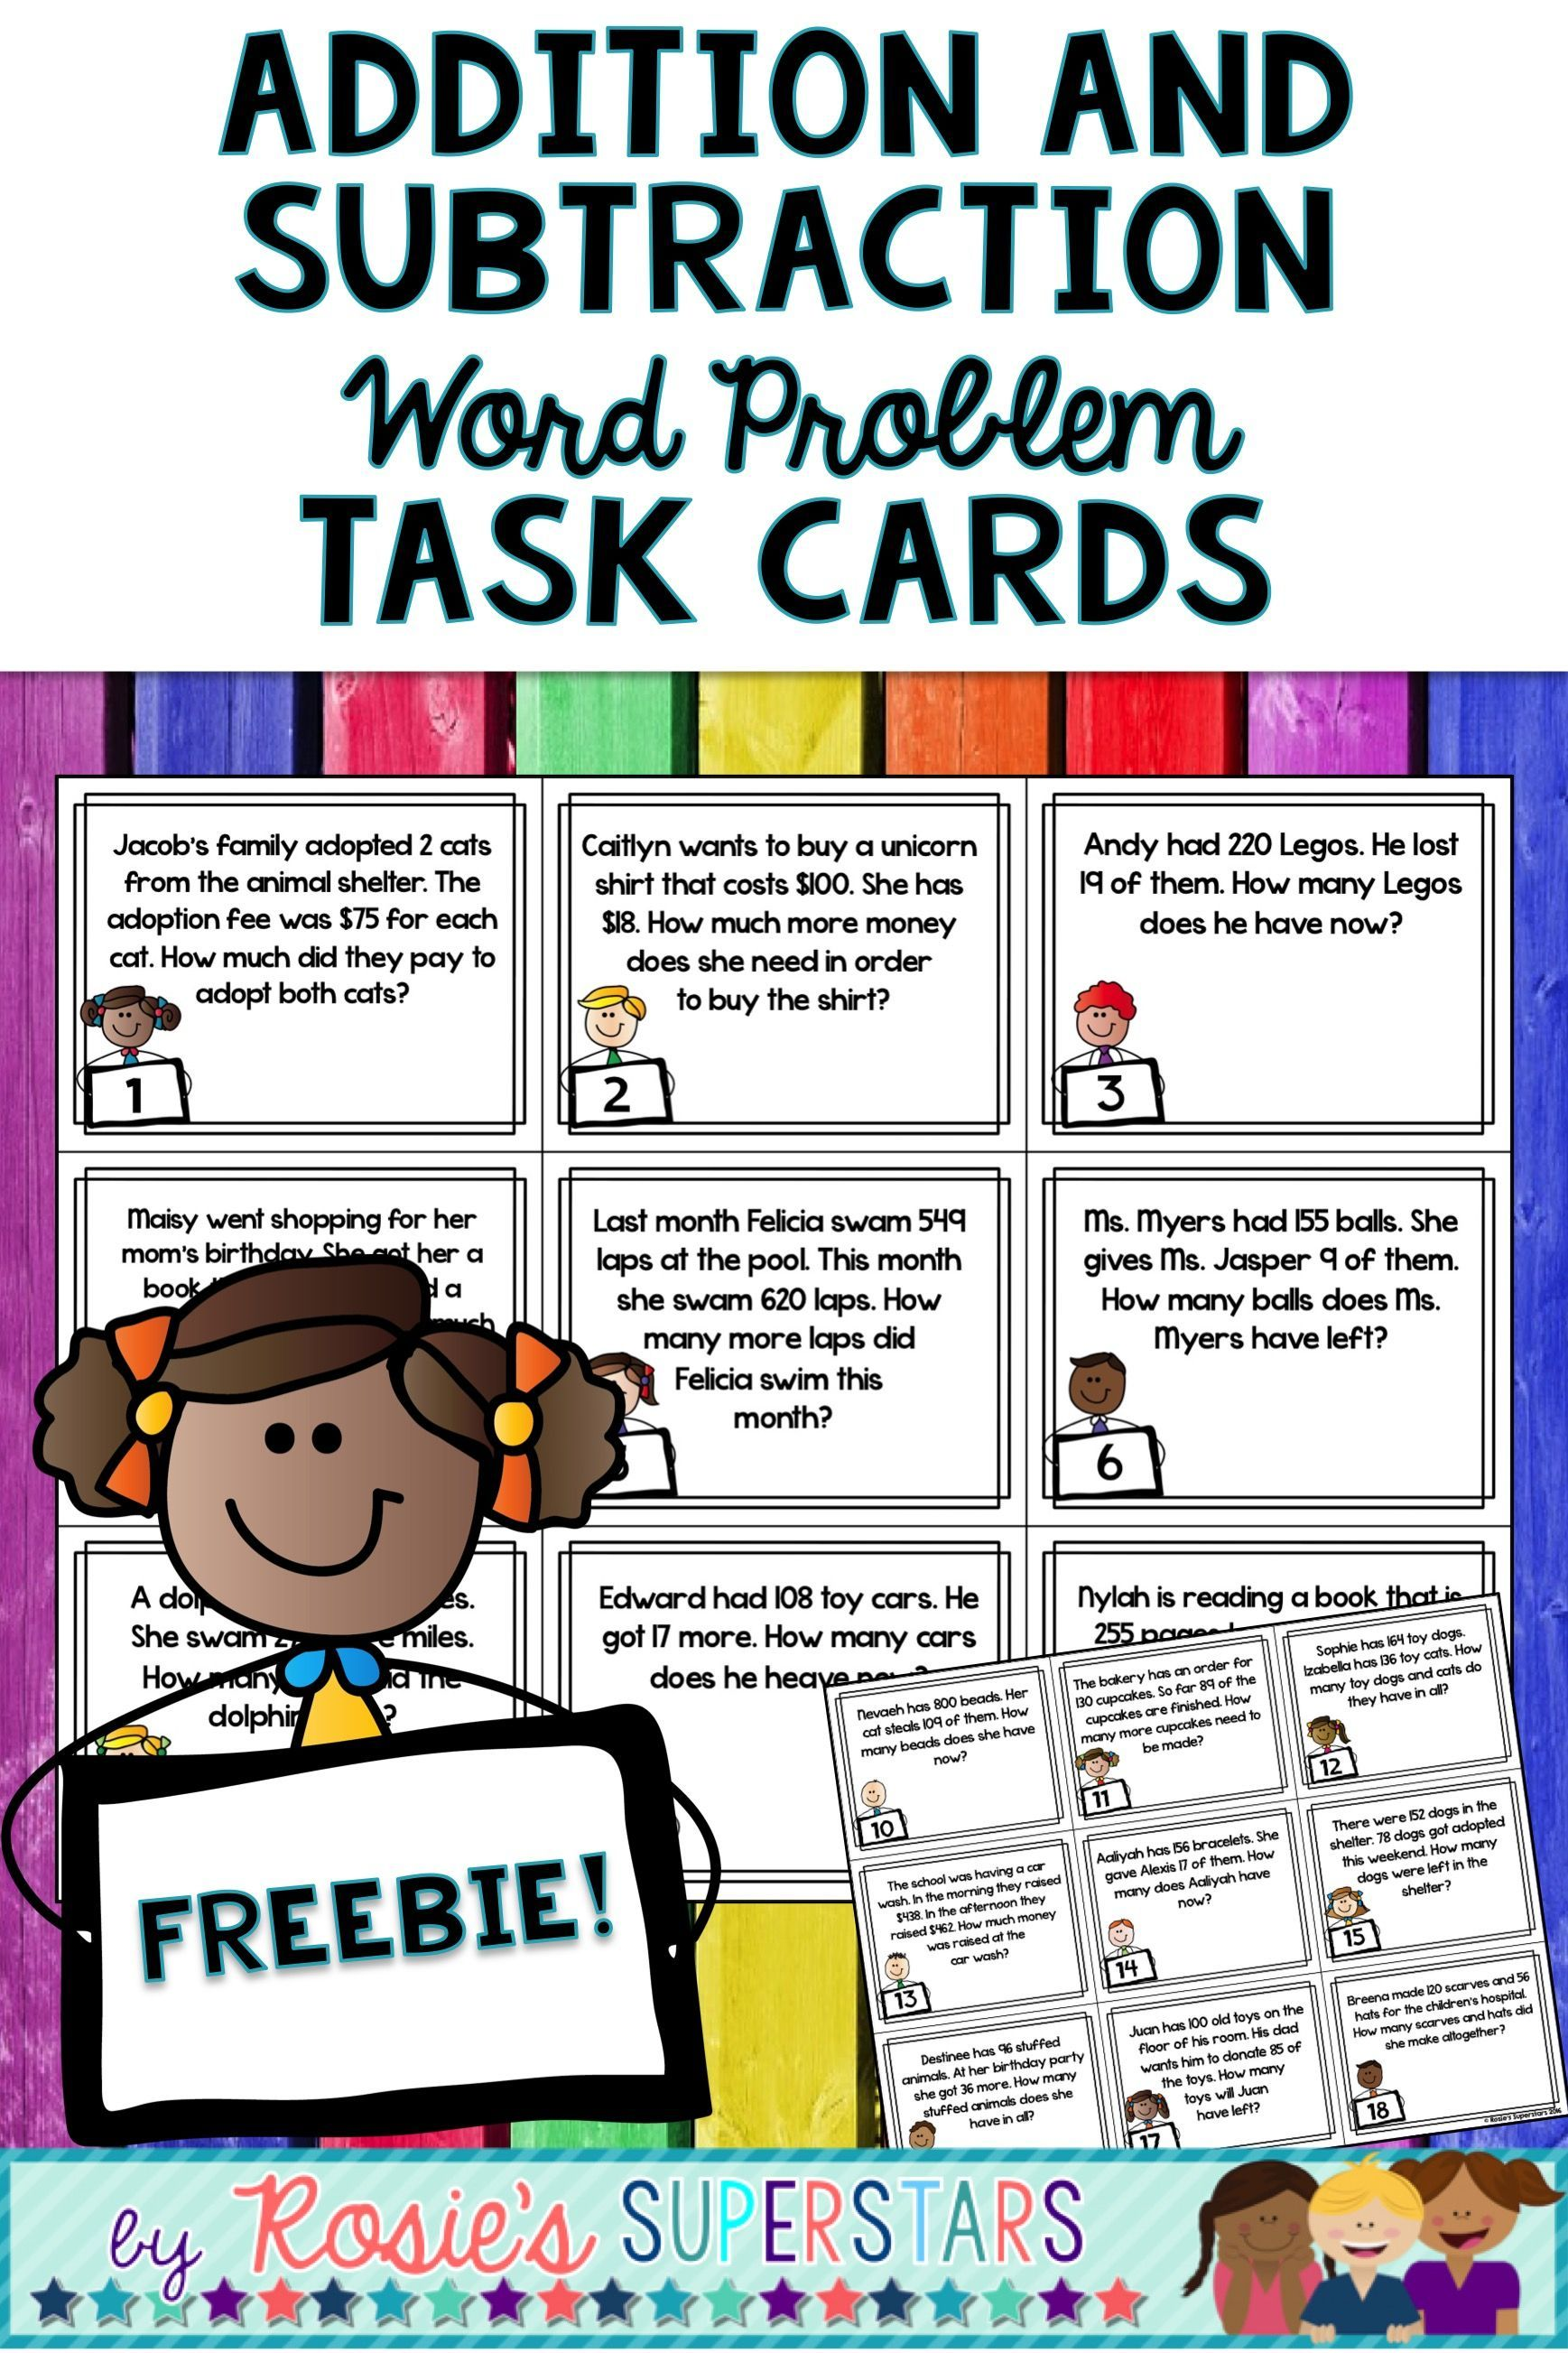 Freebie Word Problems For Addition And Subtraction Task